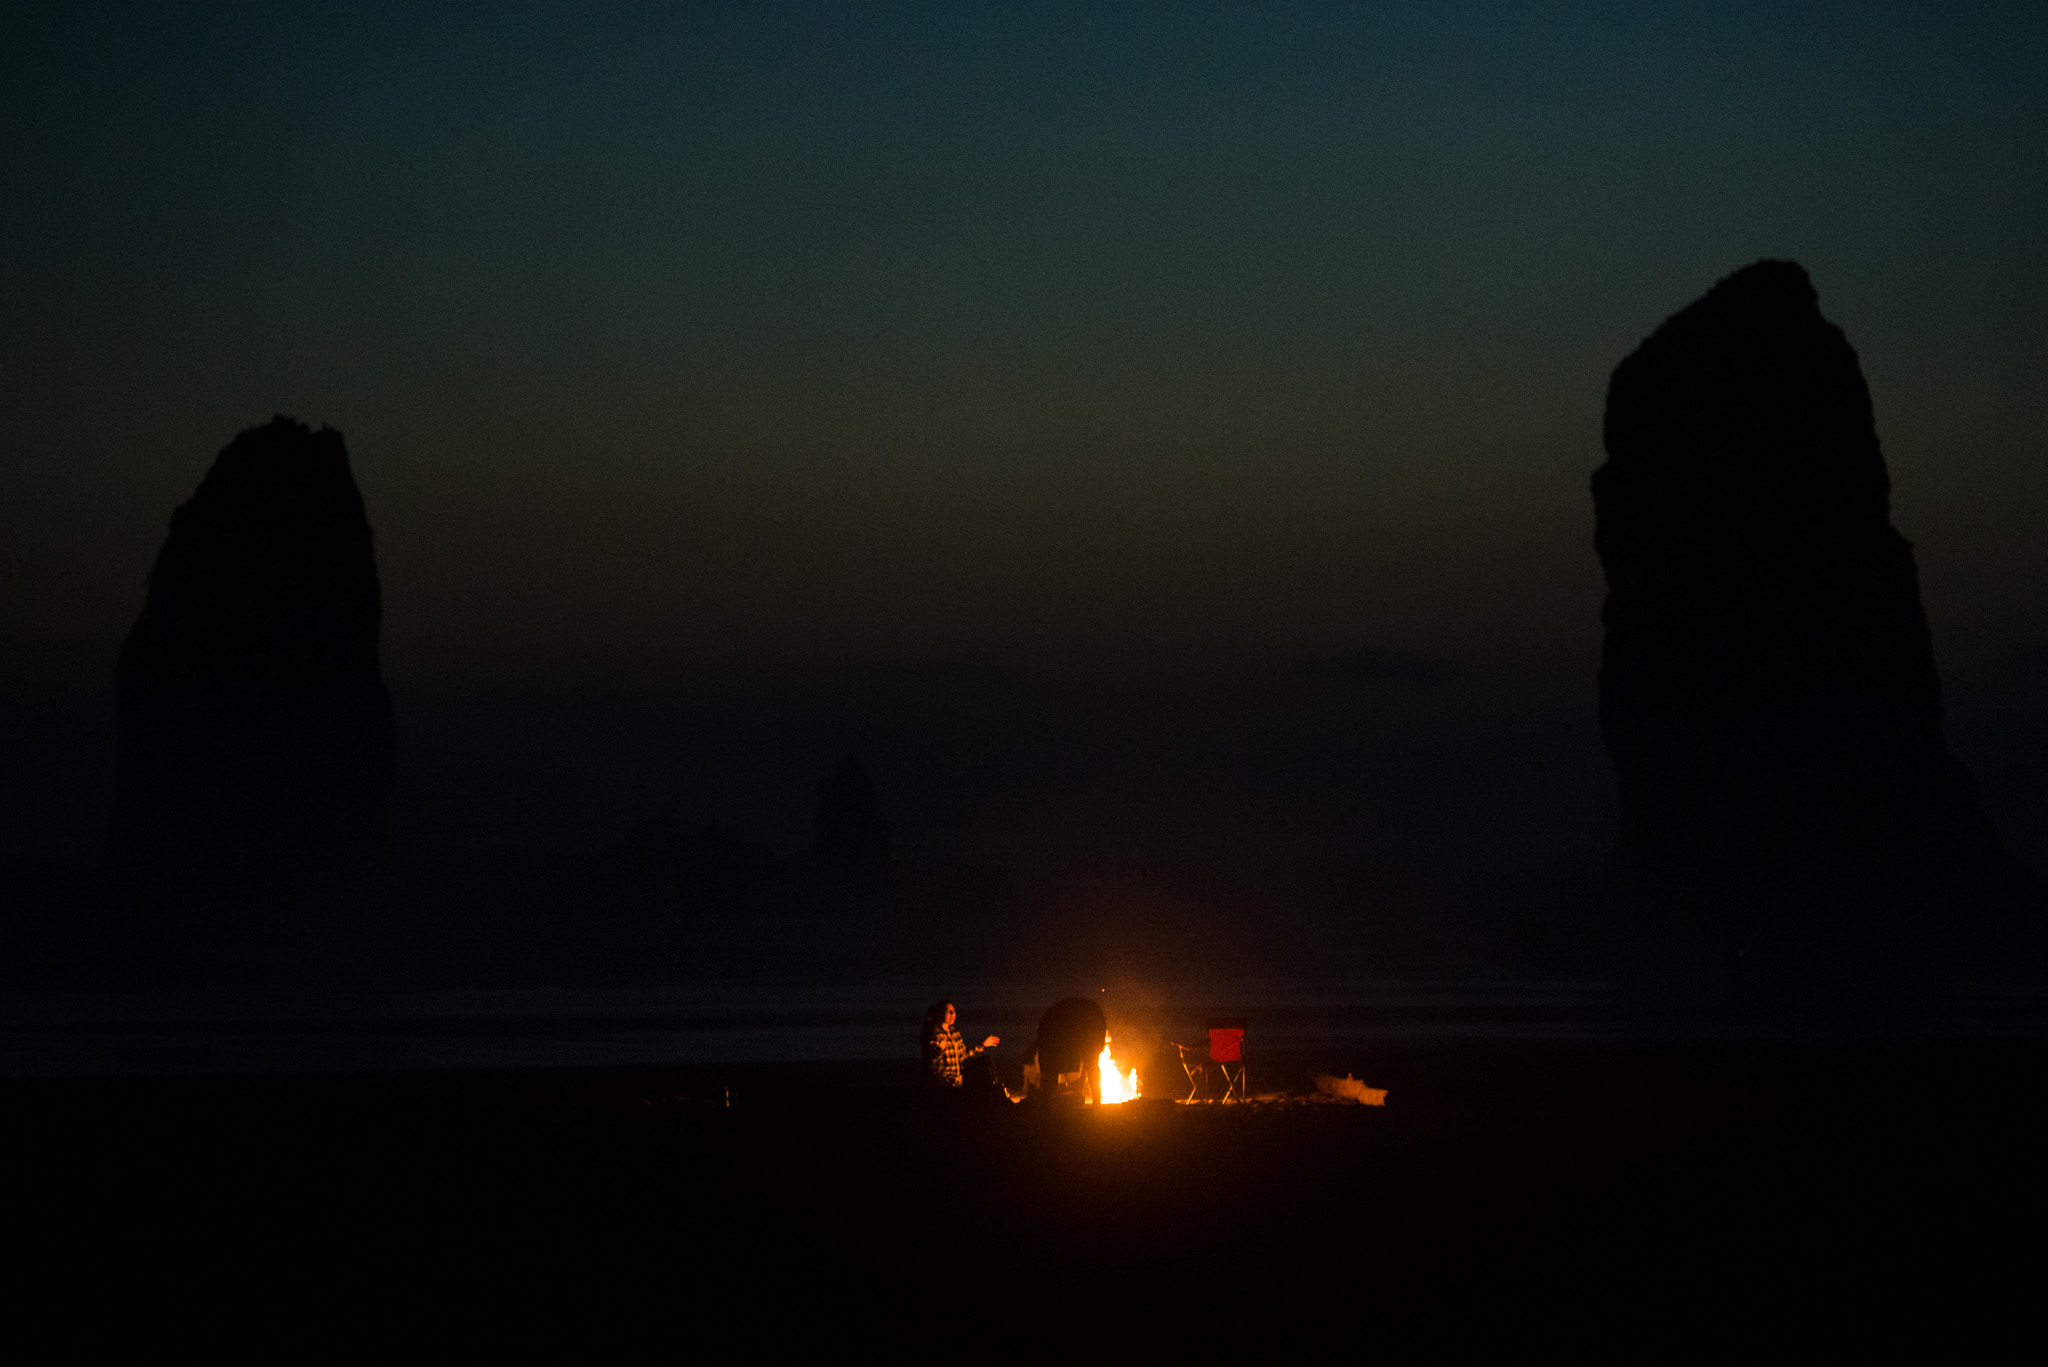 Campfires on the beach with the giant rock formations looming in the background.